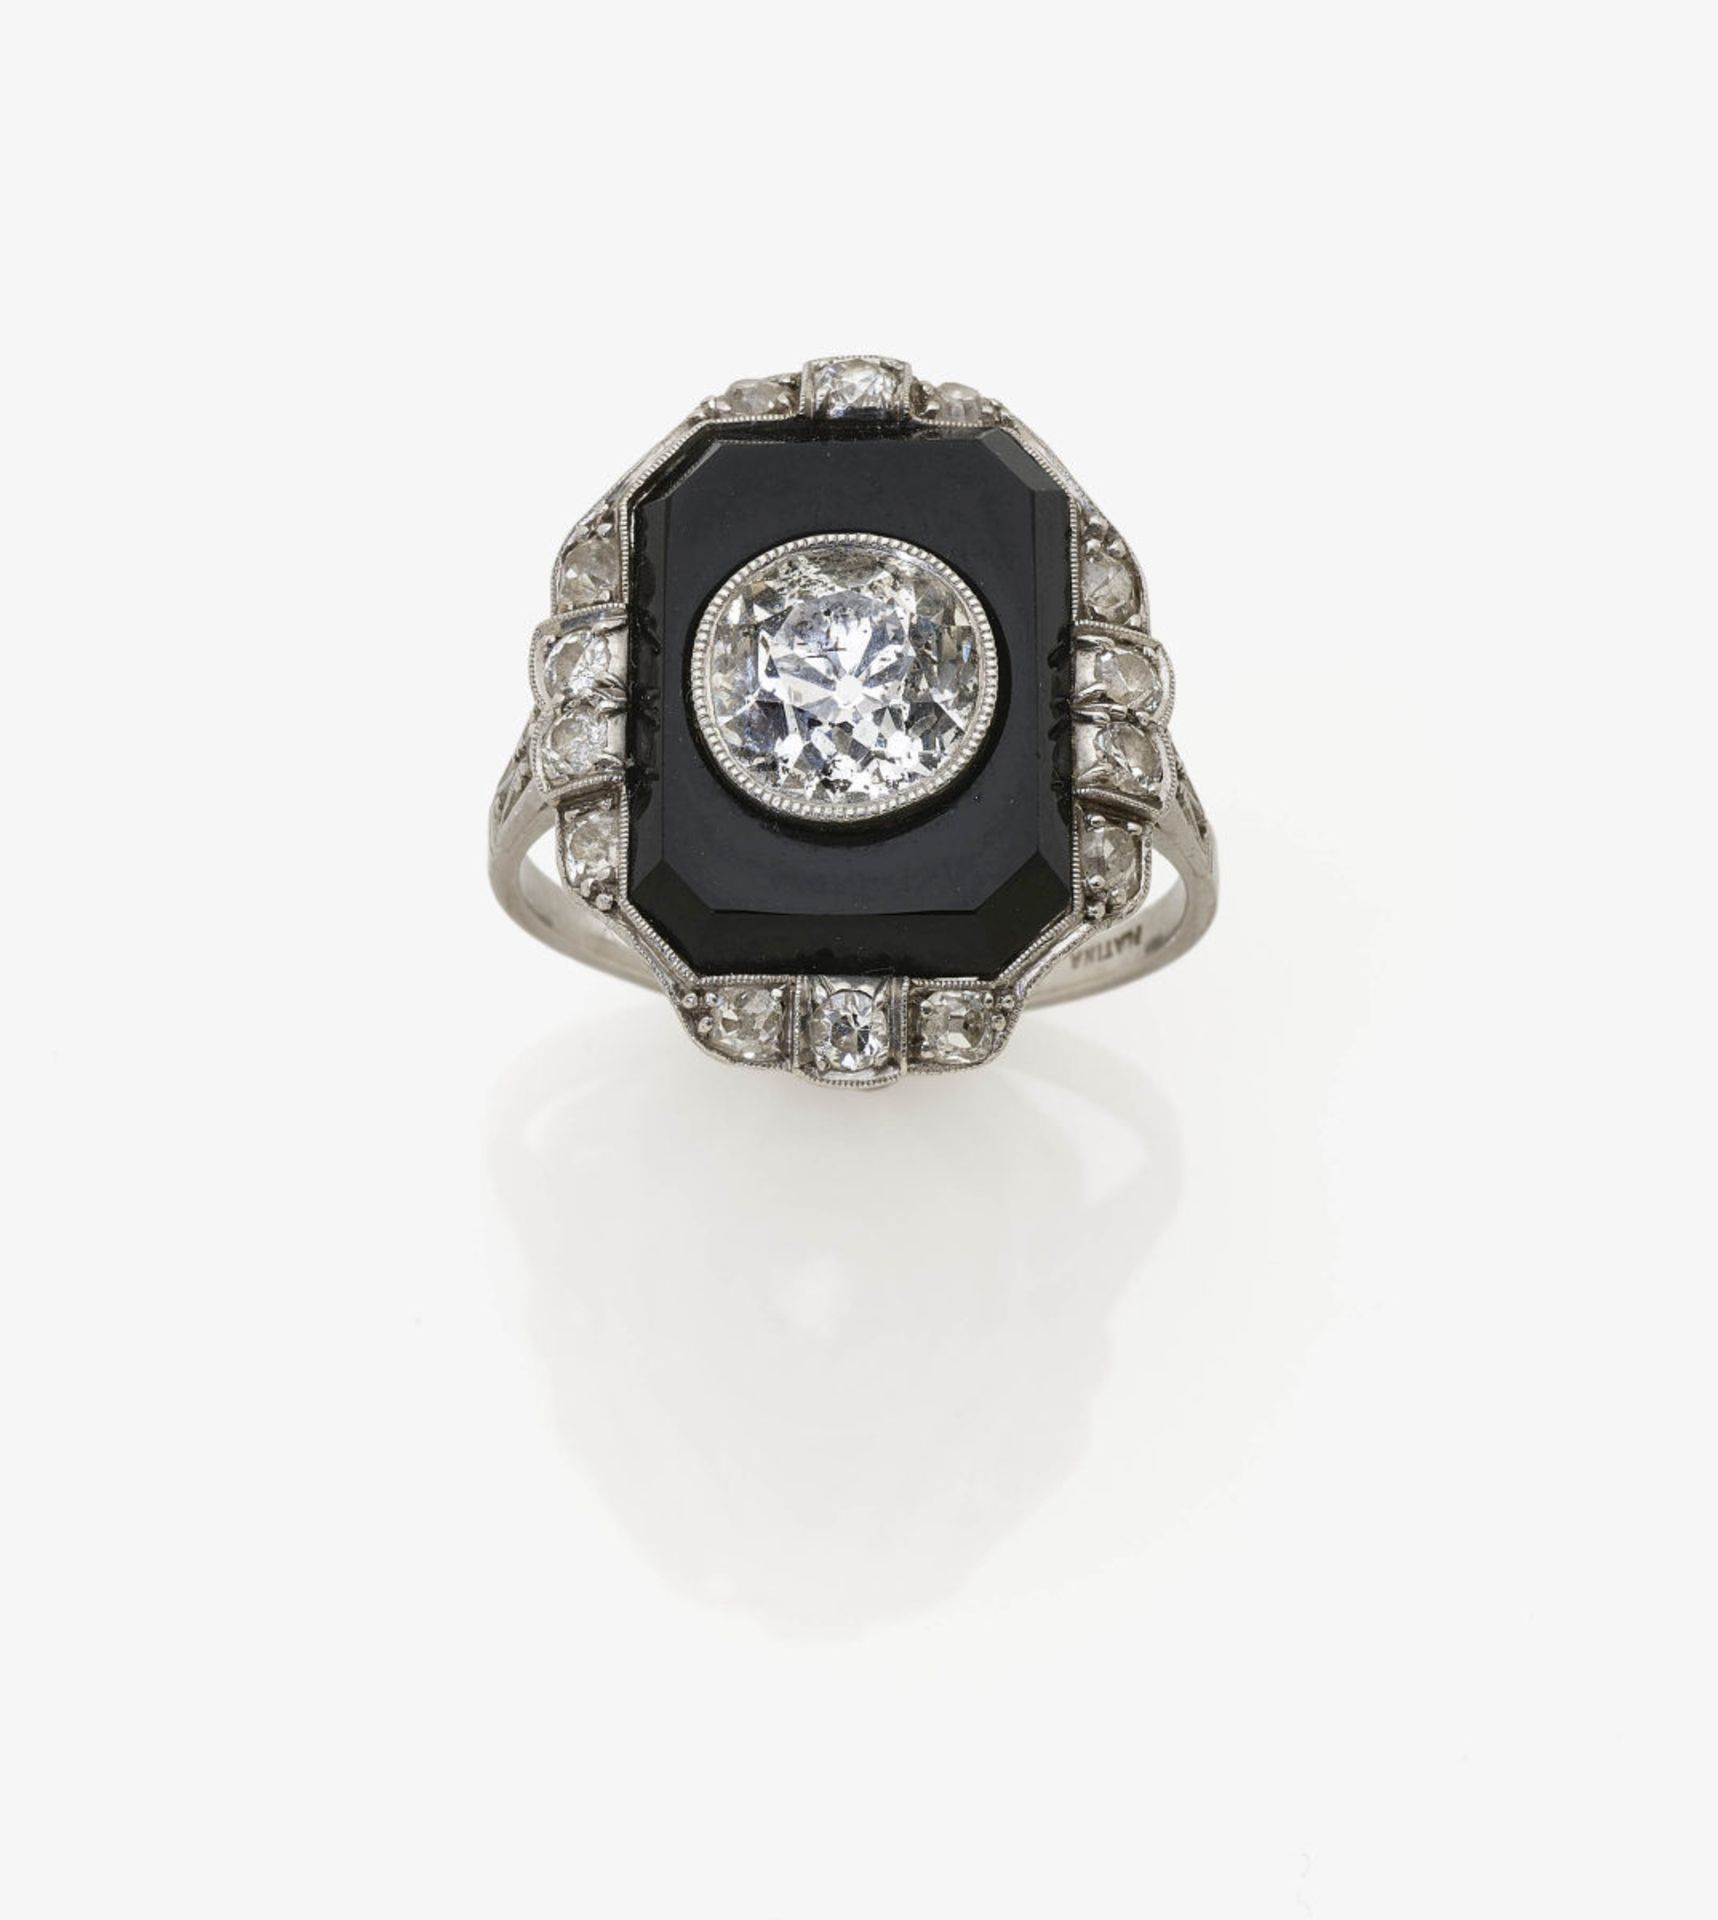 Los 1023 - An Onyx and Diamond Ring